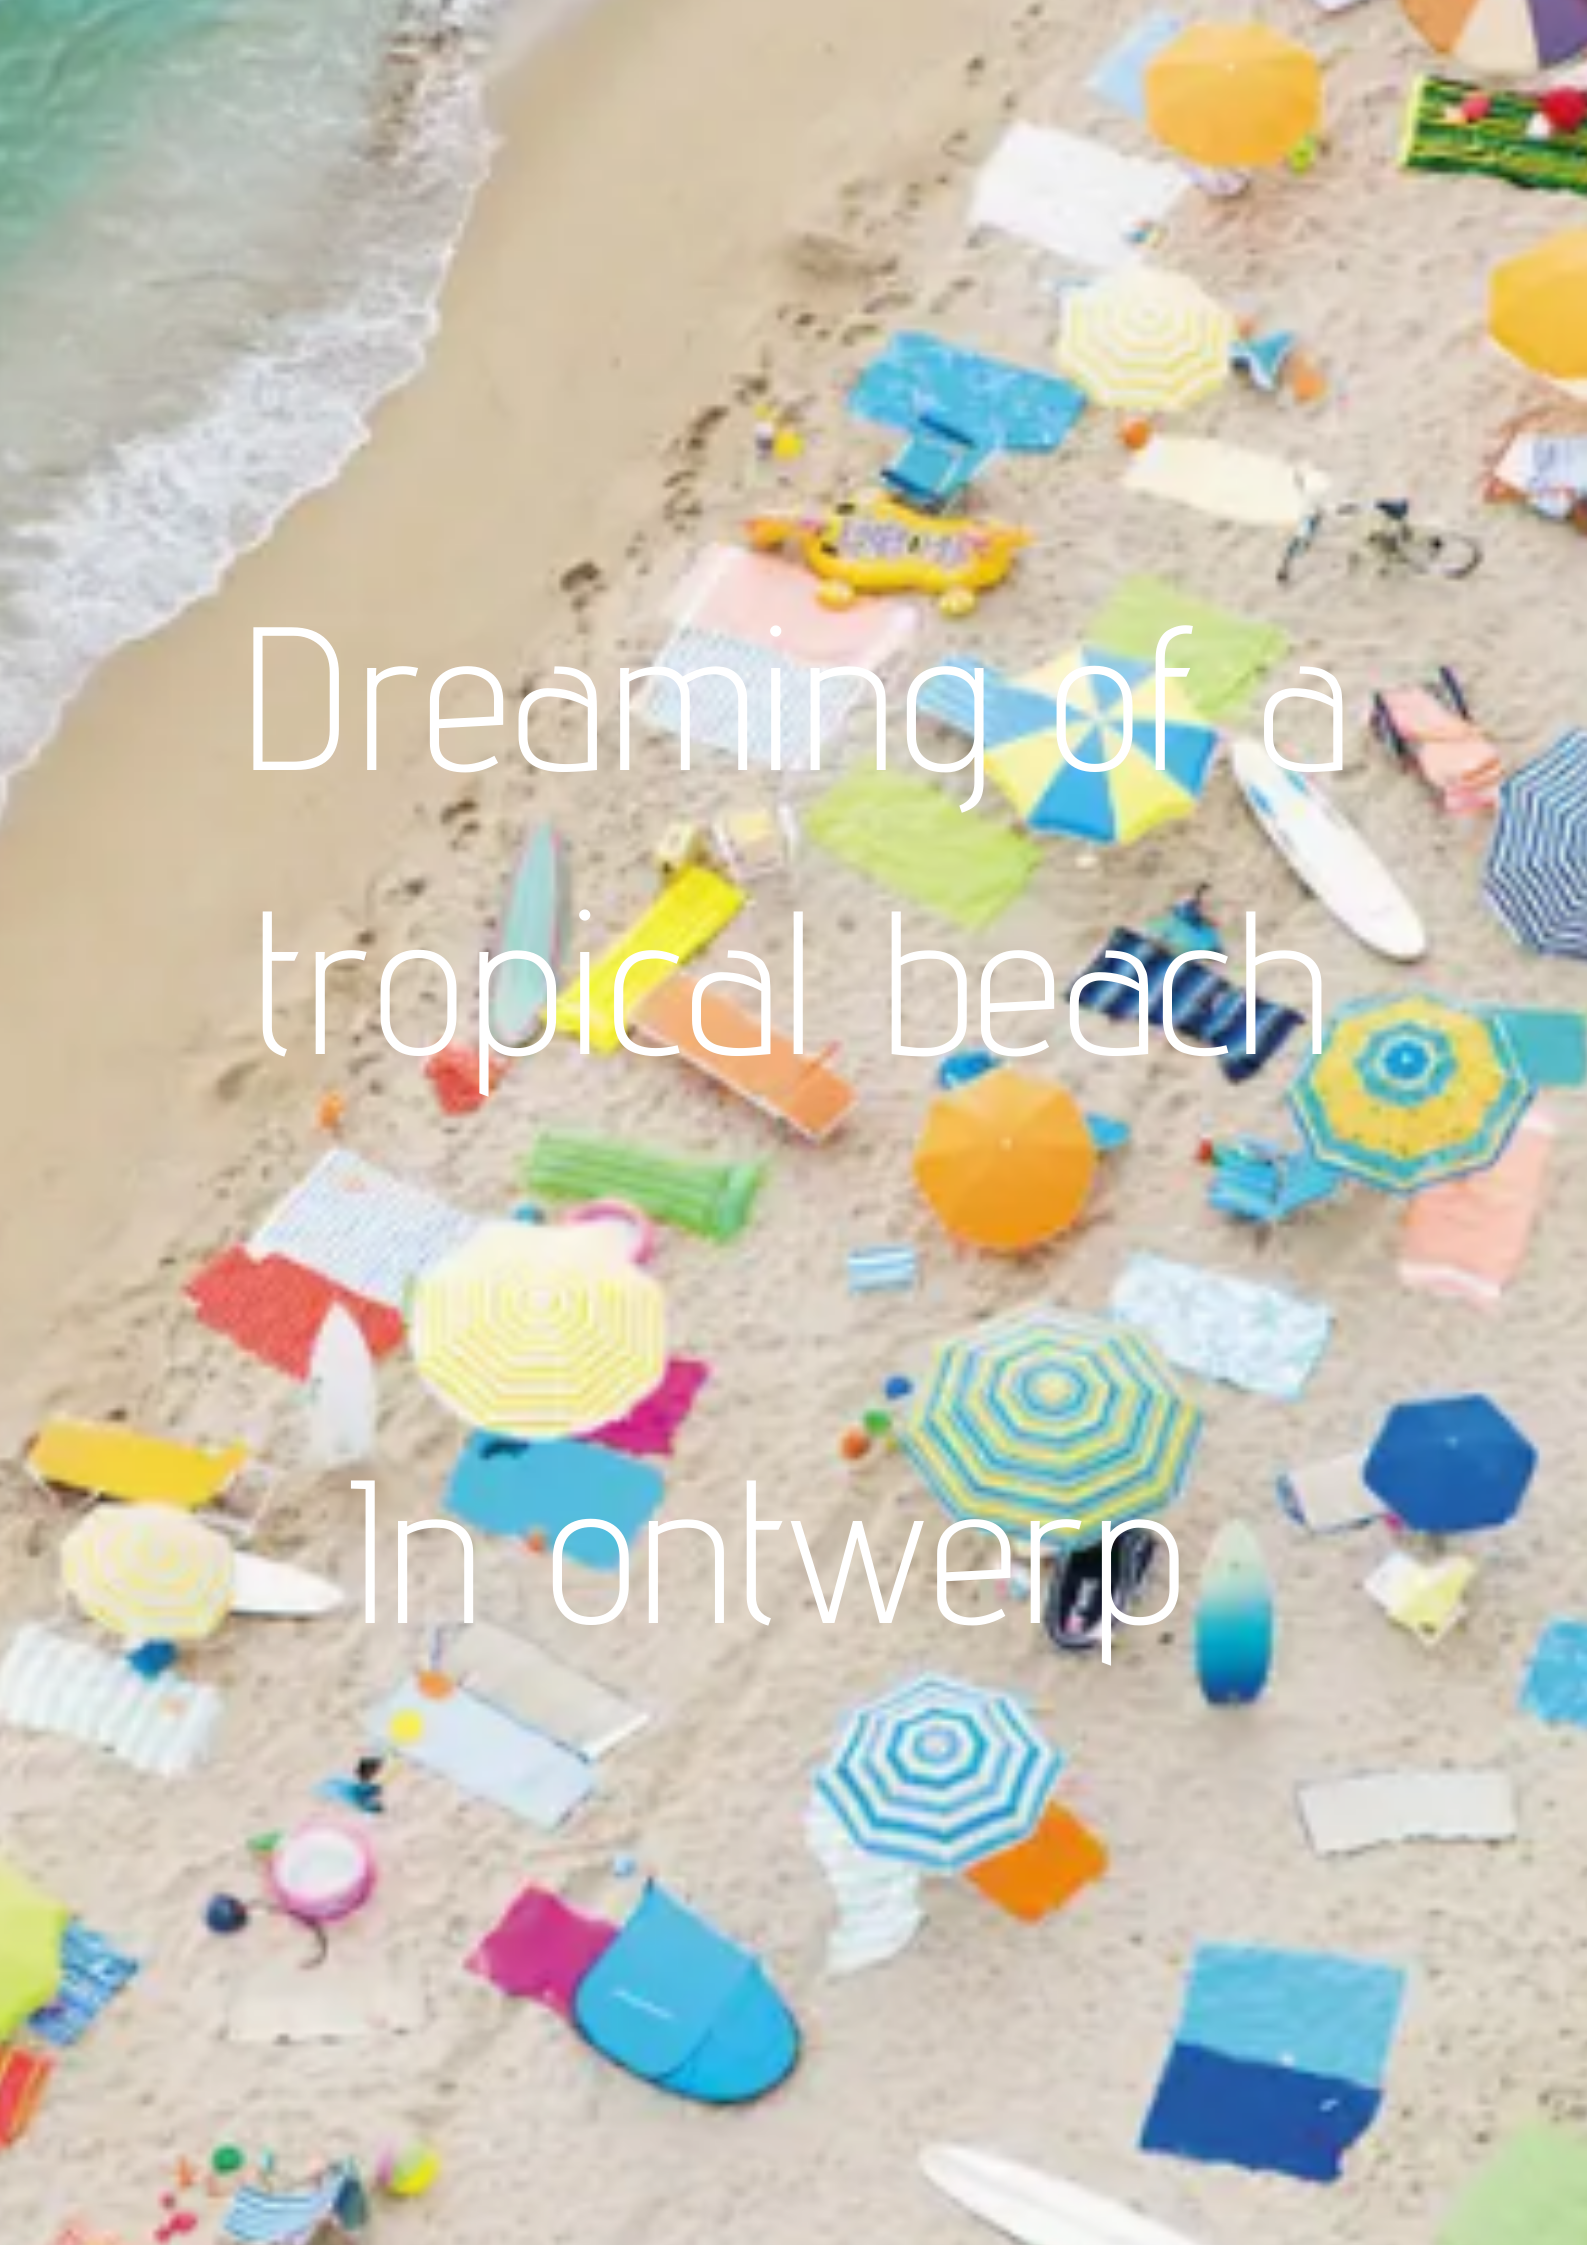 Dreaming of a tropical beach - collectie in ontwerpfase